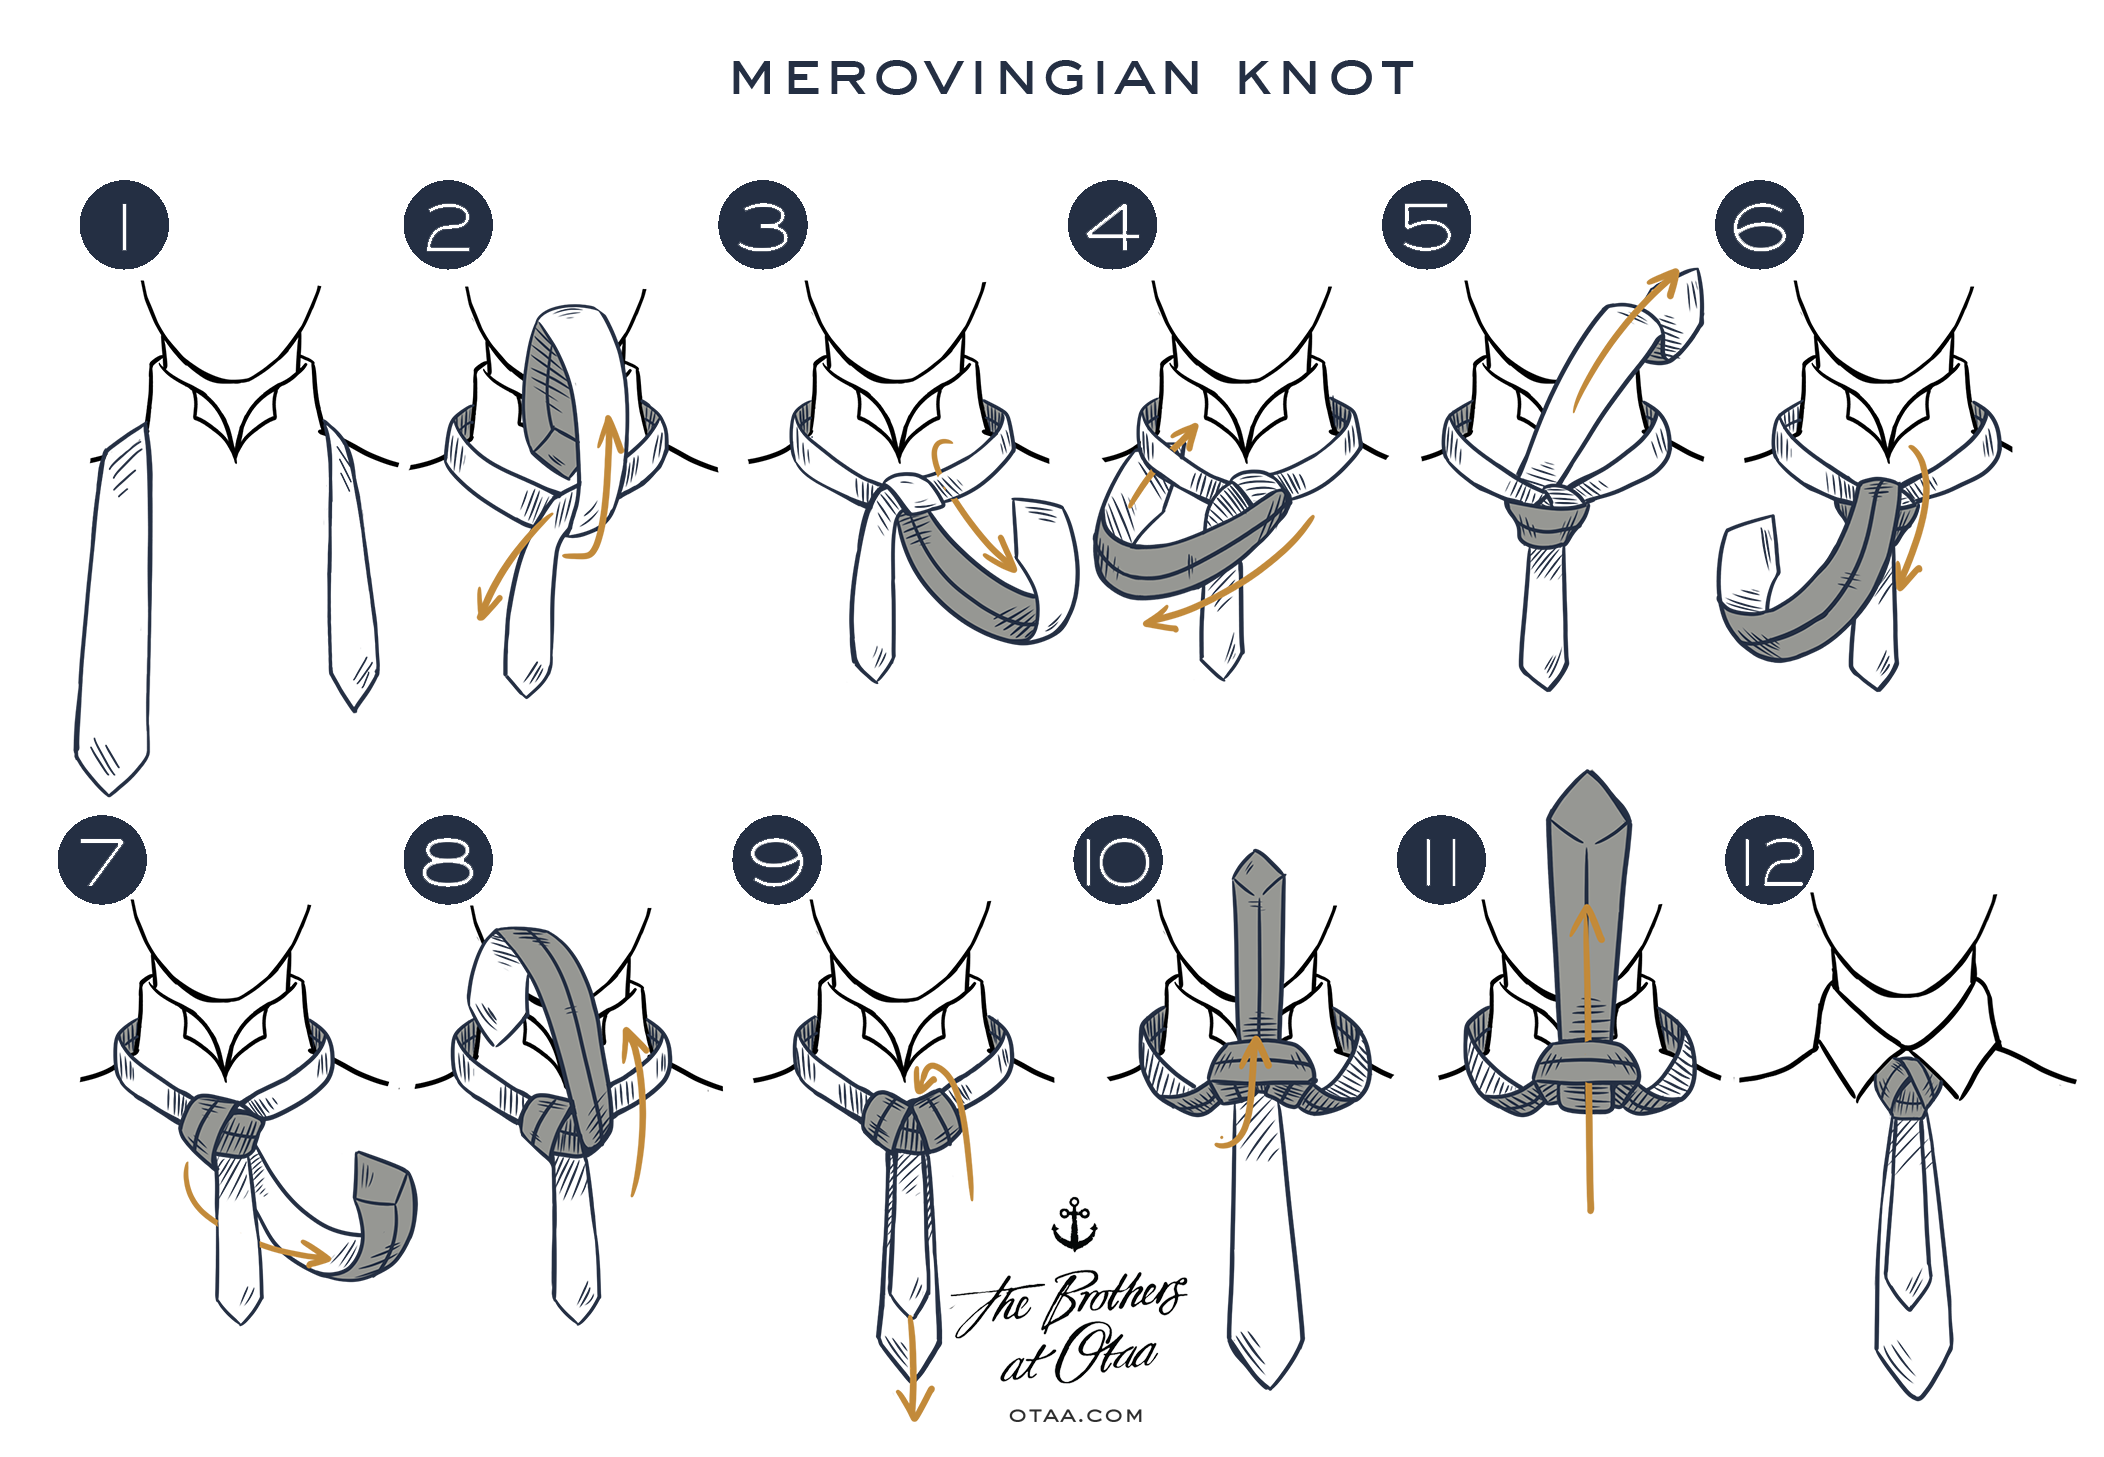 How to tie a merovingian knot - steps